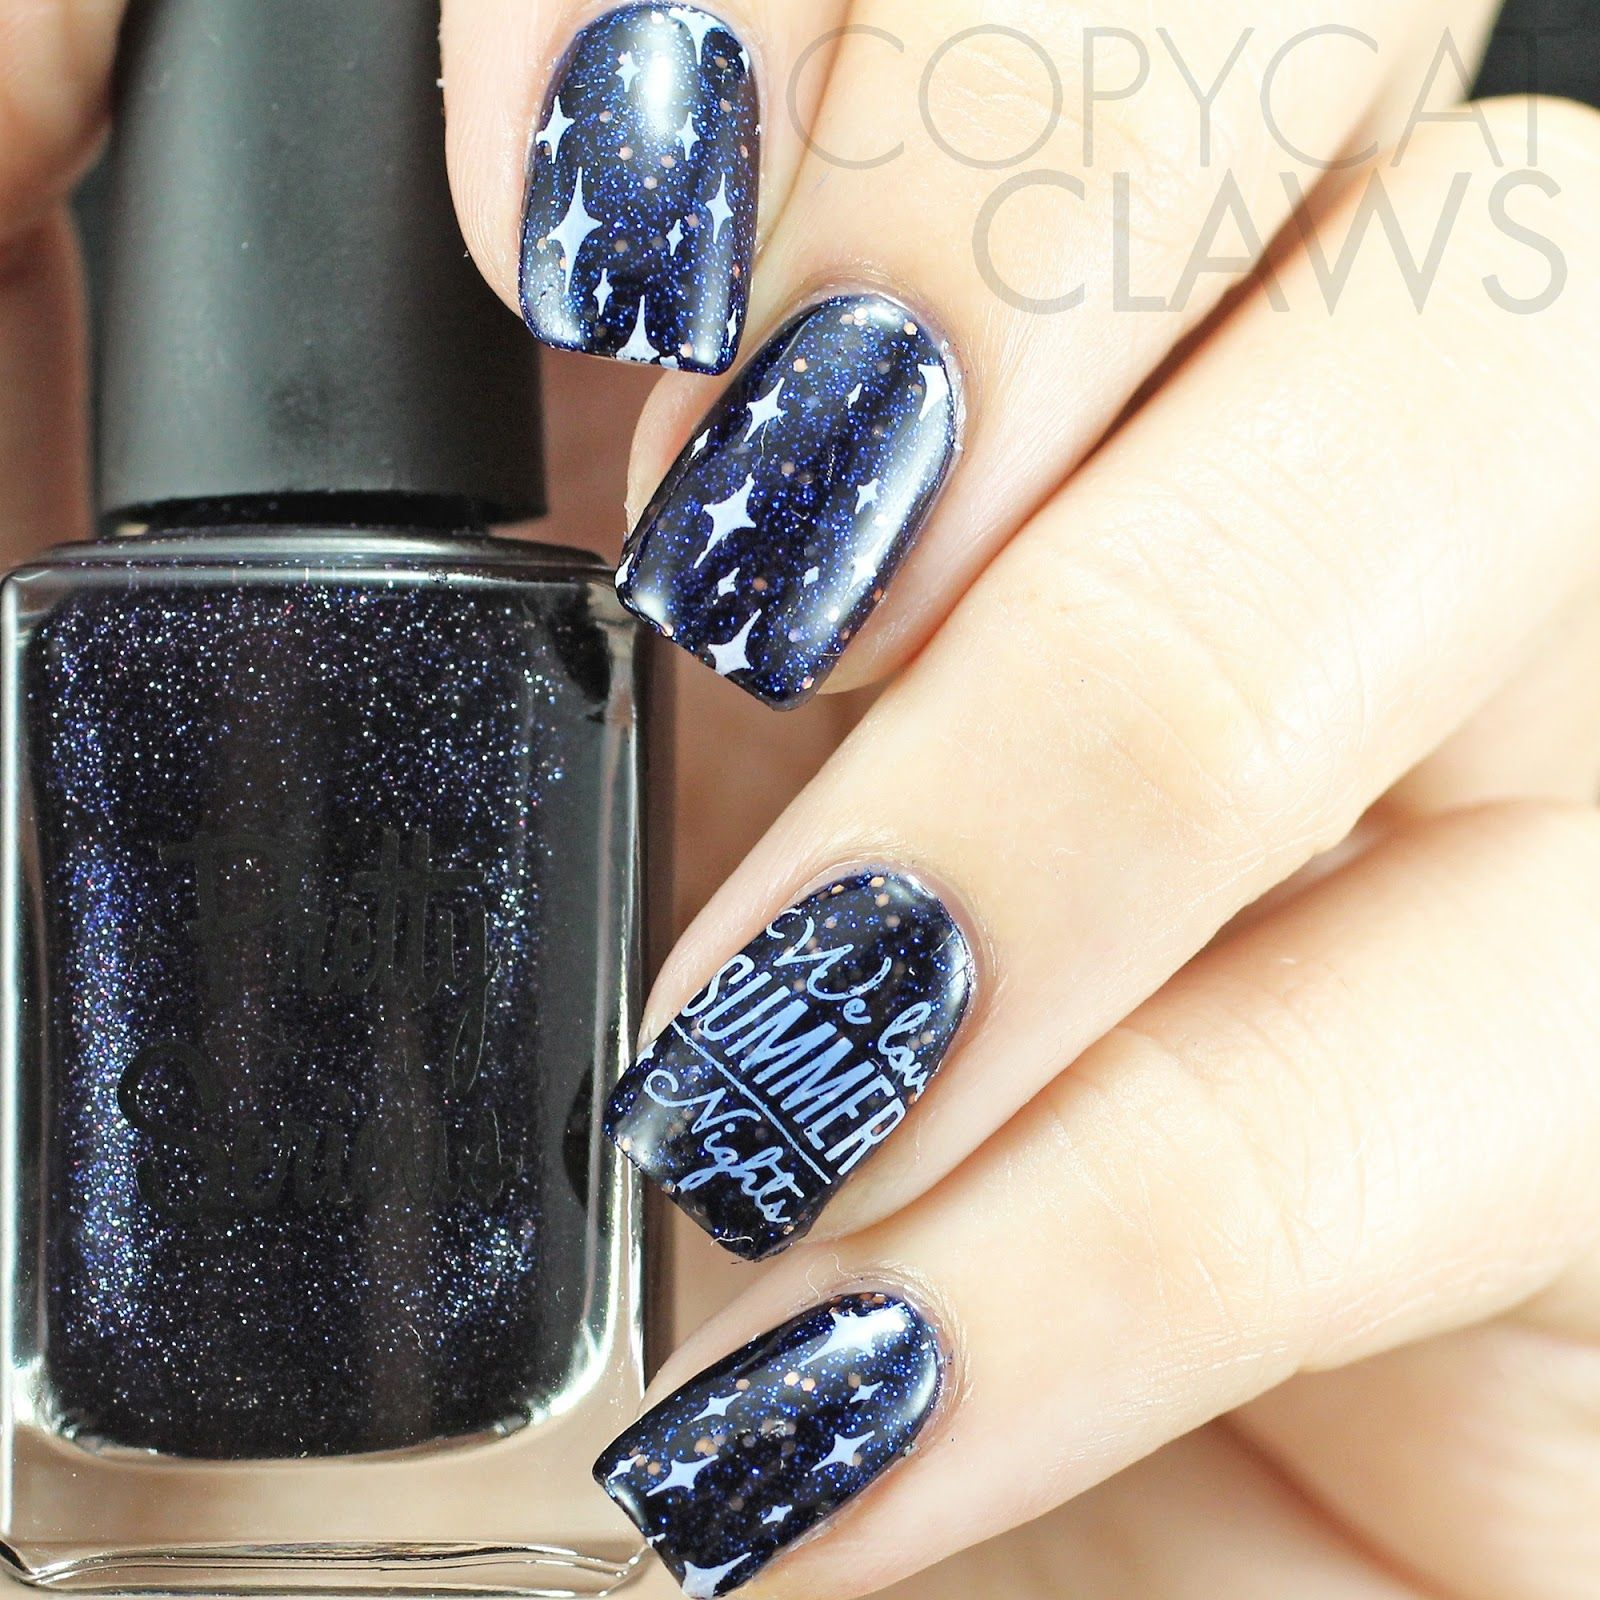 Copycat Claws: HPB Presents Summer Night Sky Nail Art | Christmas ...